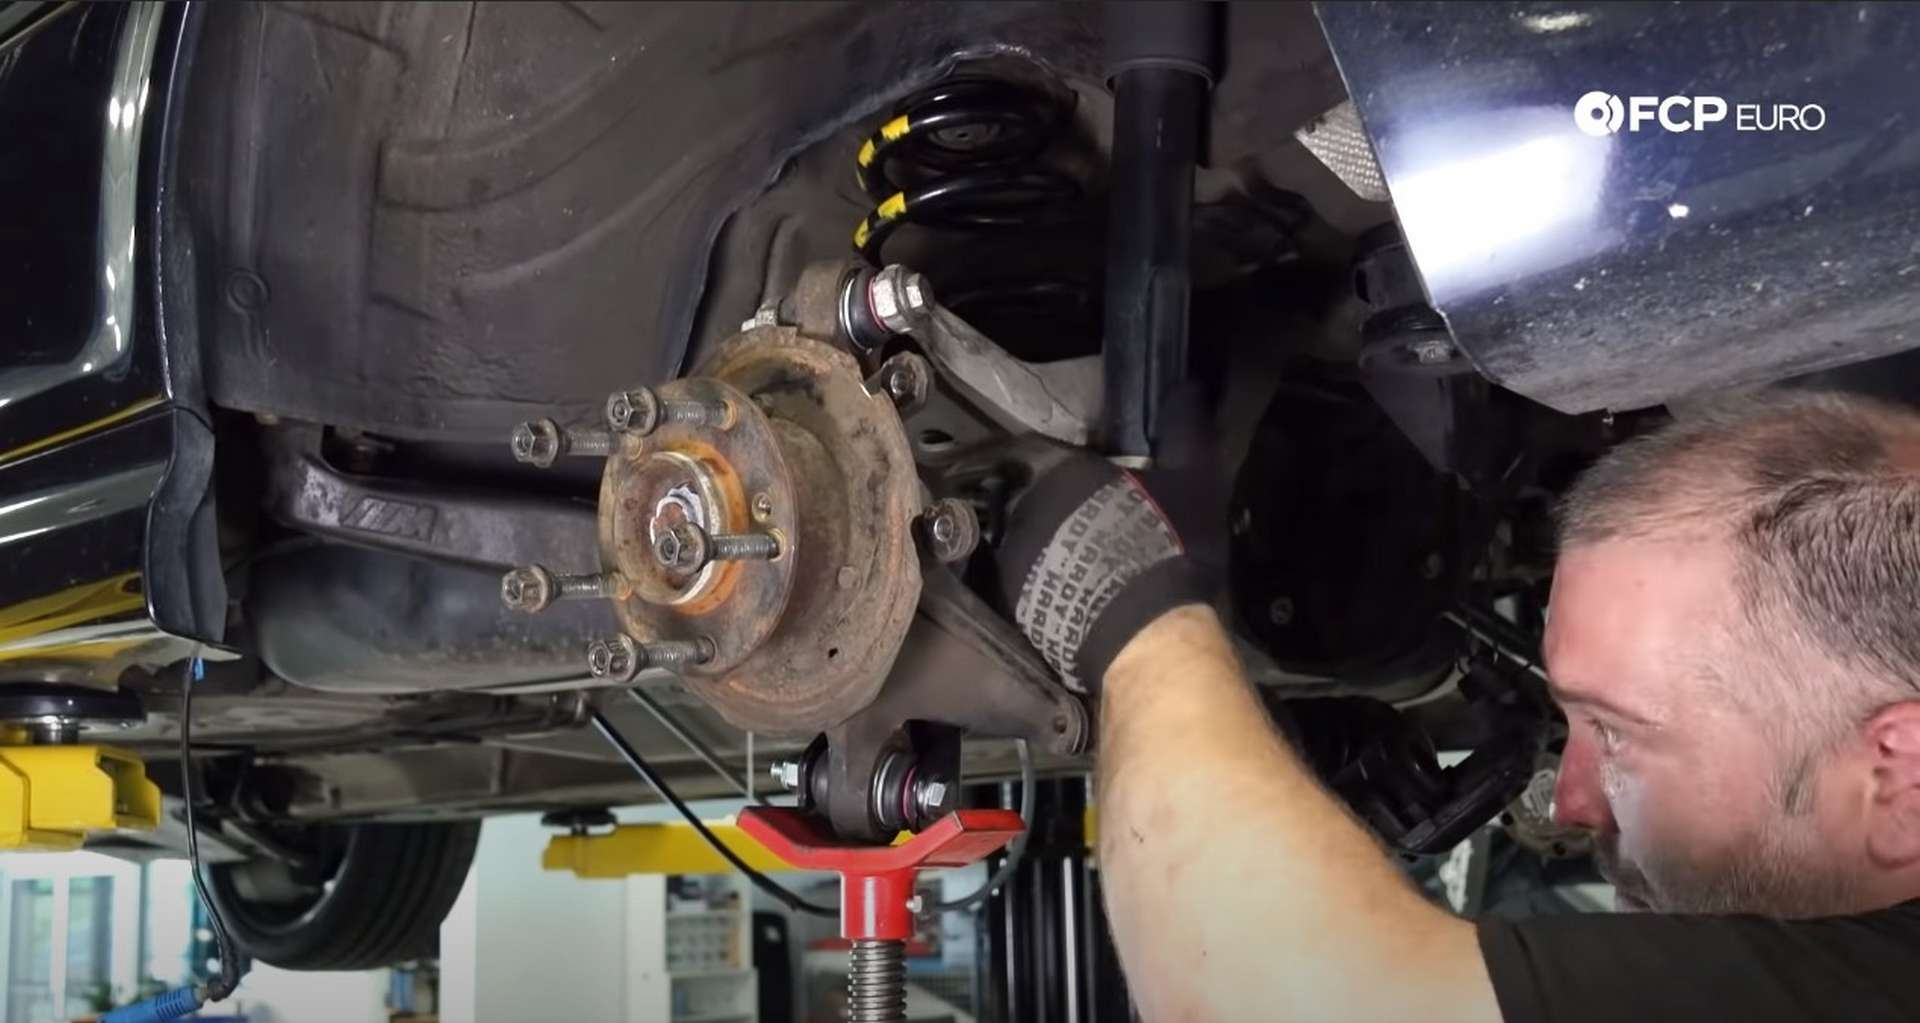 DIY E46 BMW M3 Rear Subframe Refresh Part 3 raising the knuckle to line up the lower shock bolt